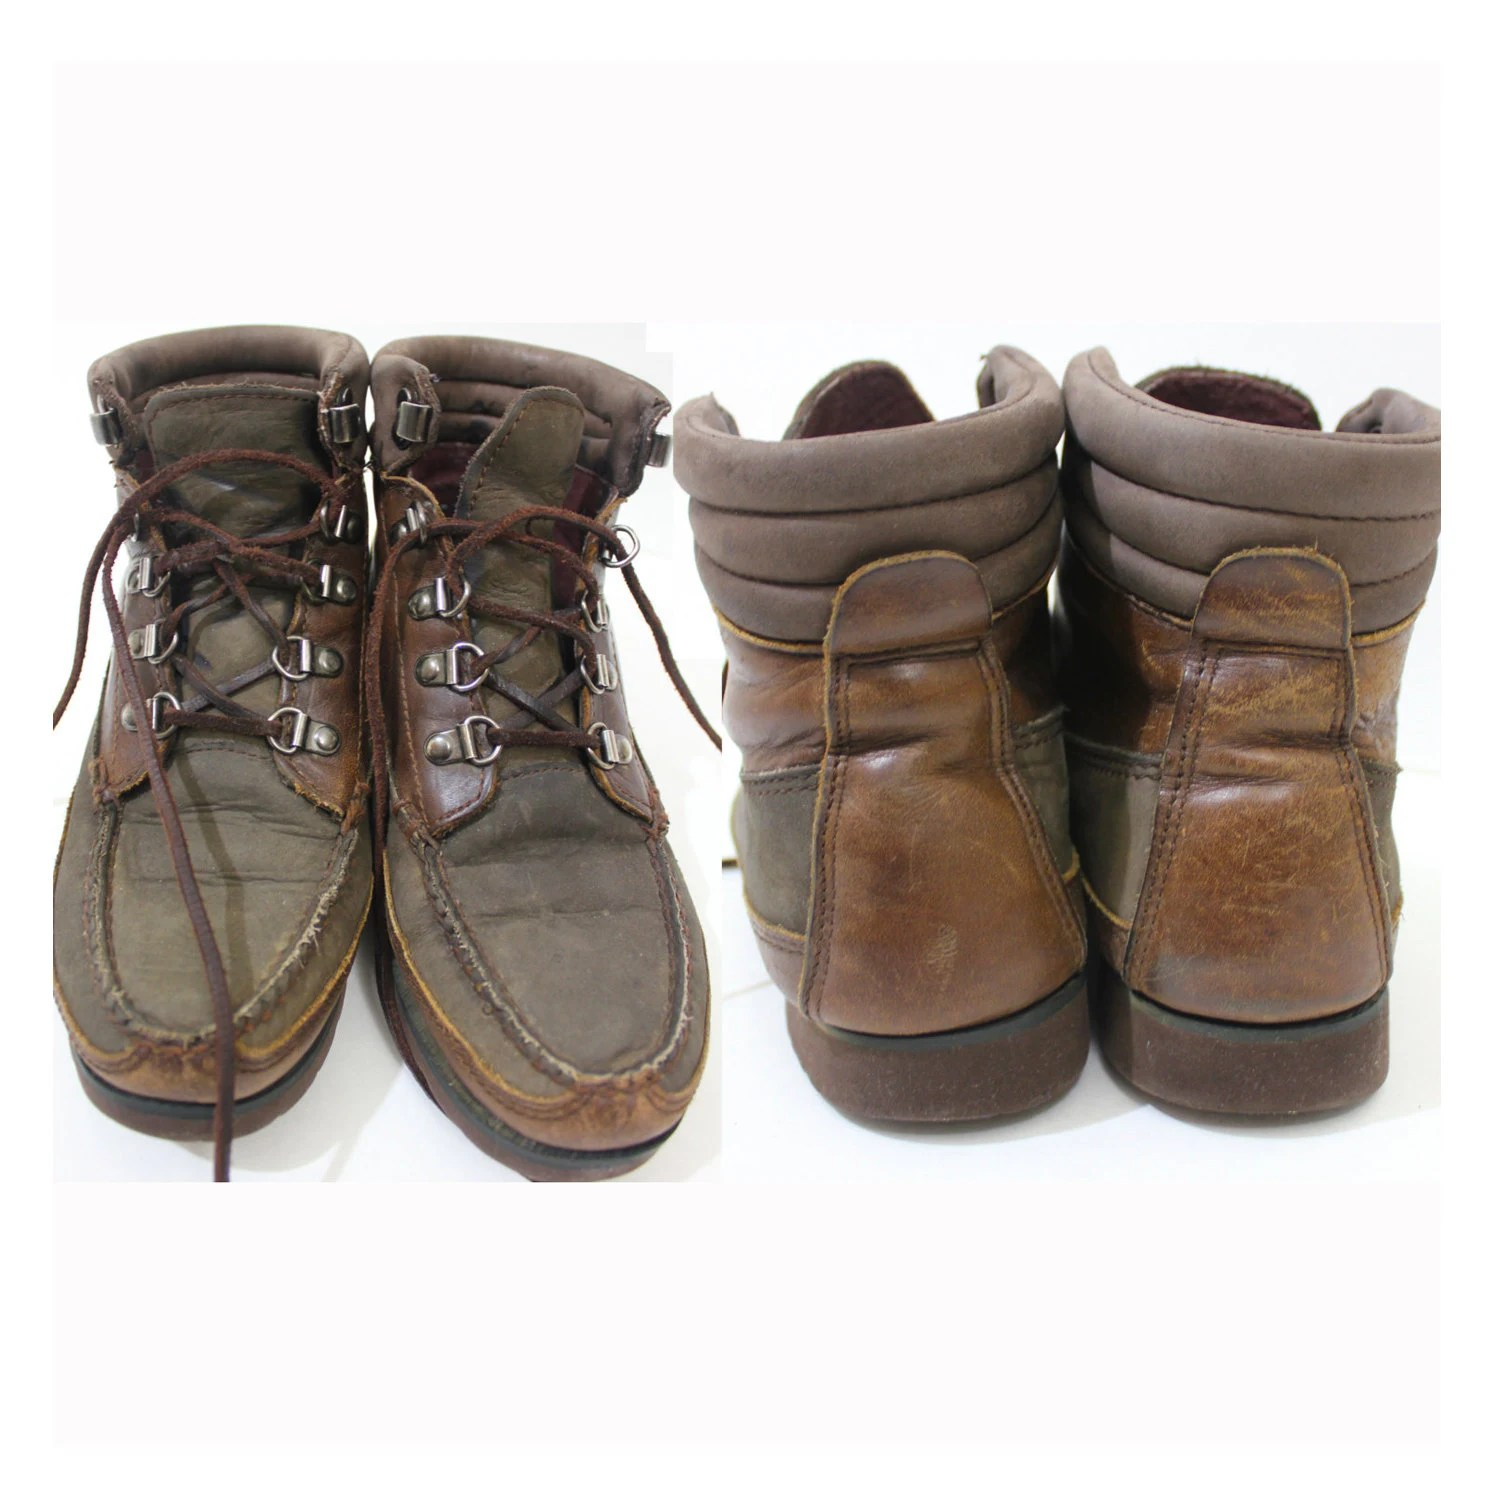 Vintage Retro Eddie Bauer Leather Boots Shoes By